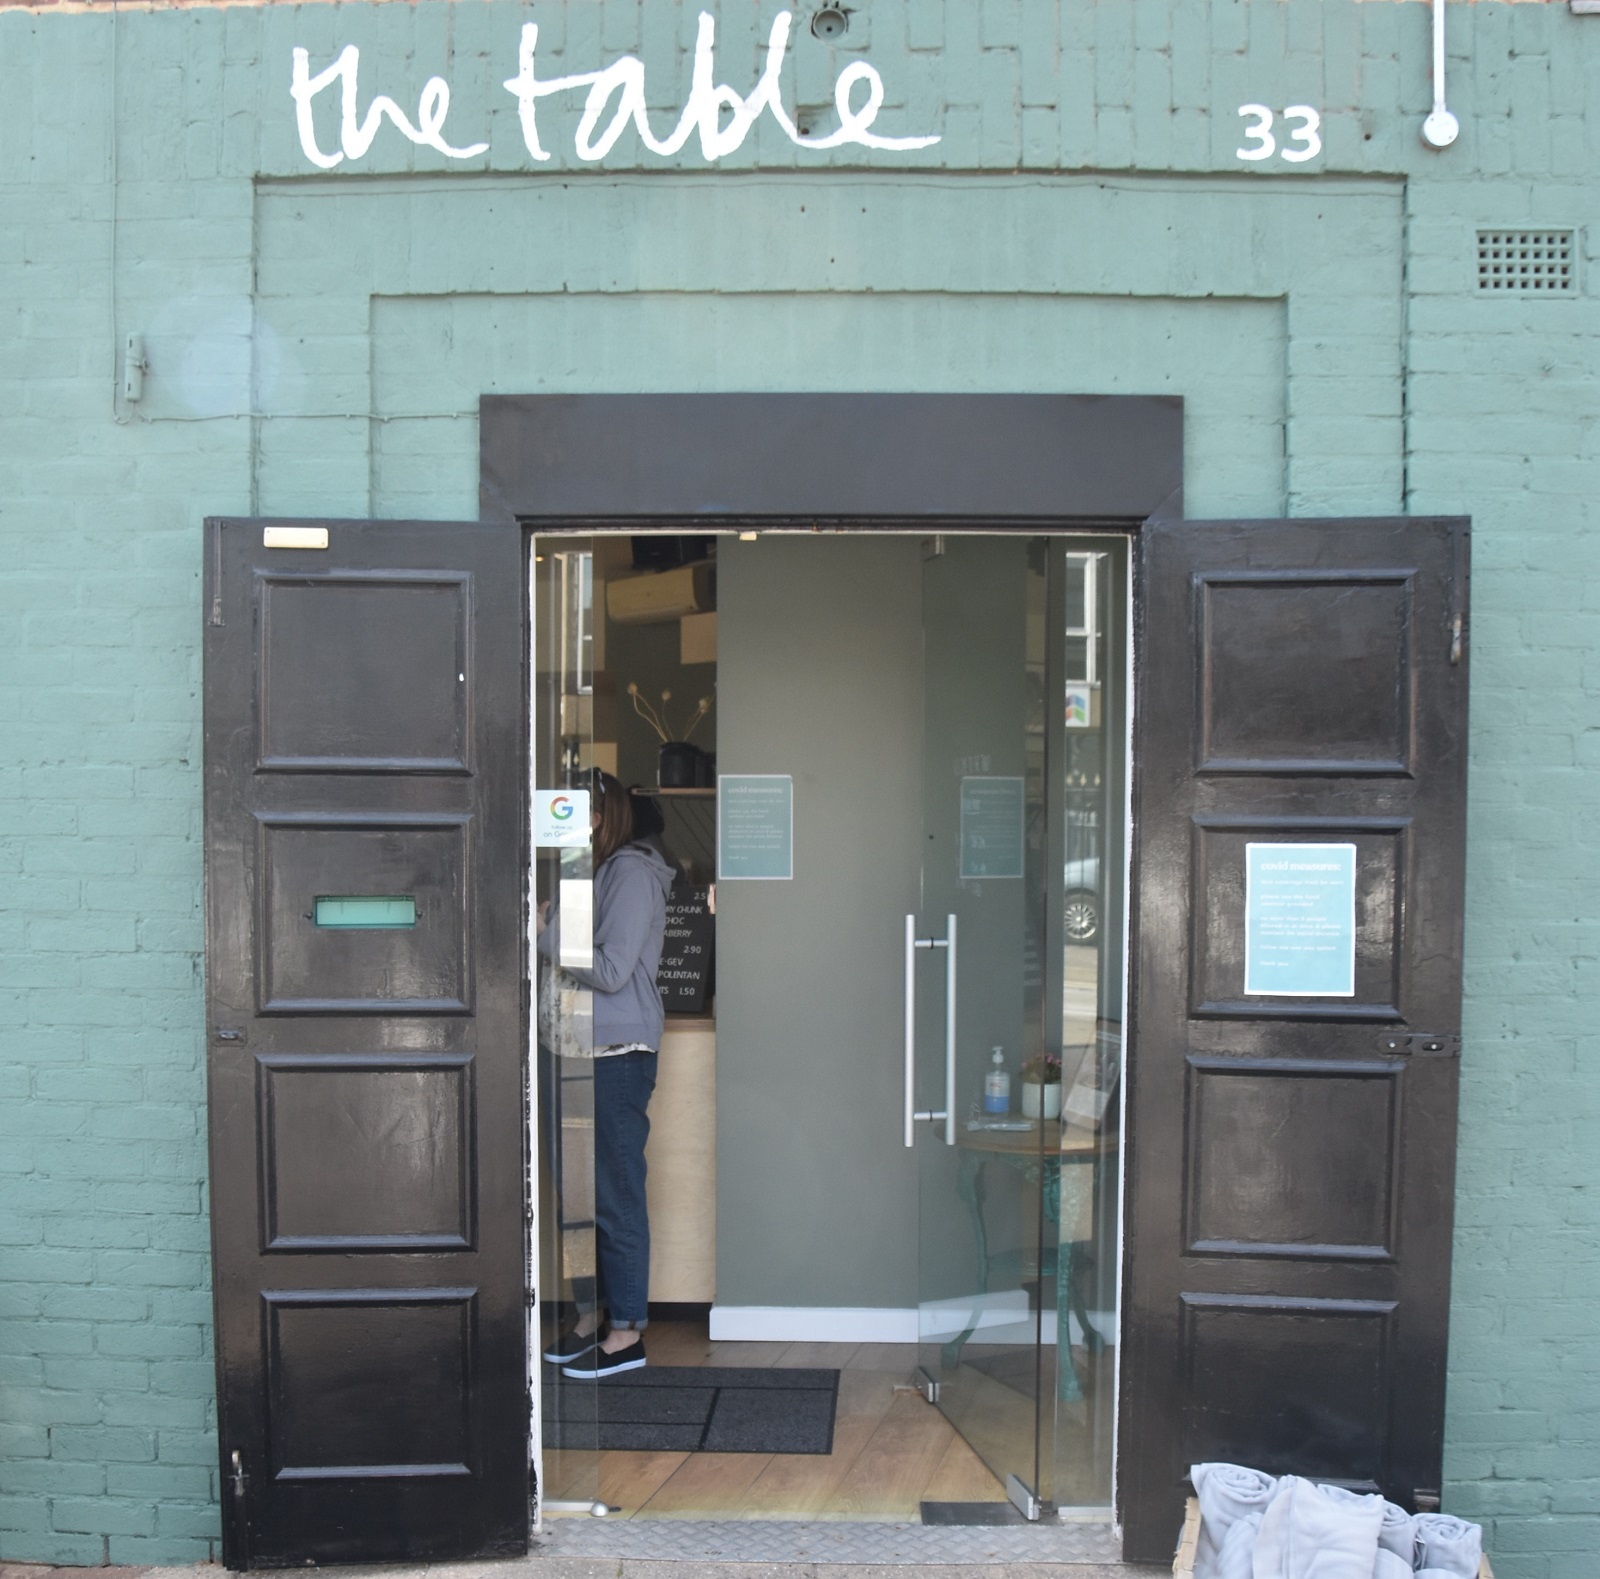 The open double doors welcome you to The Table in Walsall.